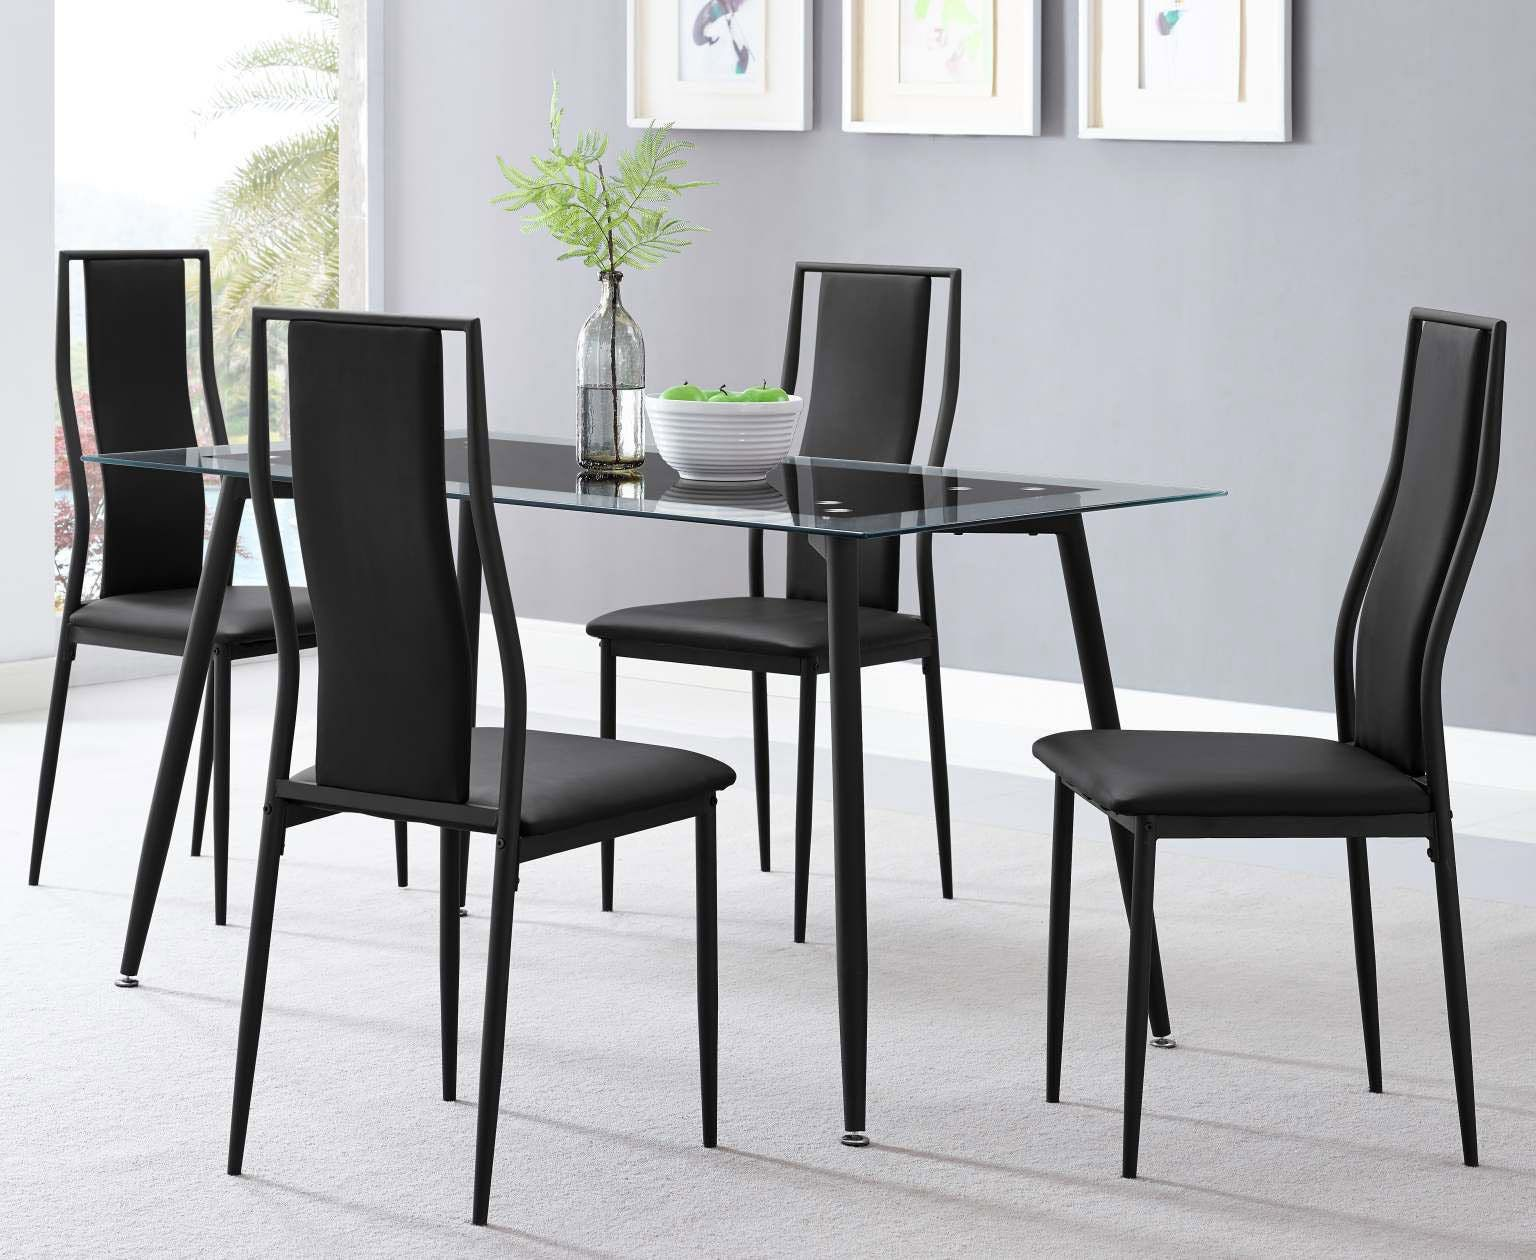 Delta 5 Piece Set With Black Metal Frame 279 00 Table 55 X 31 5